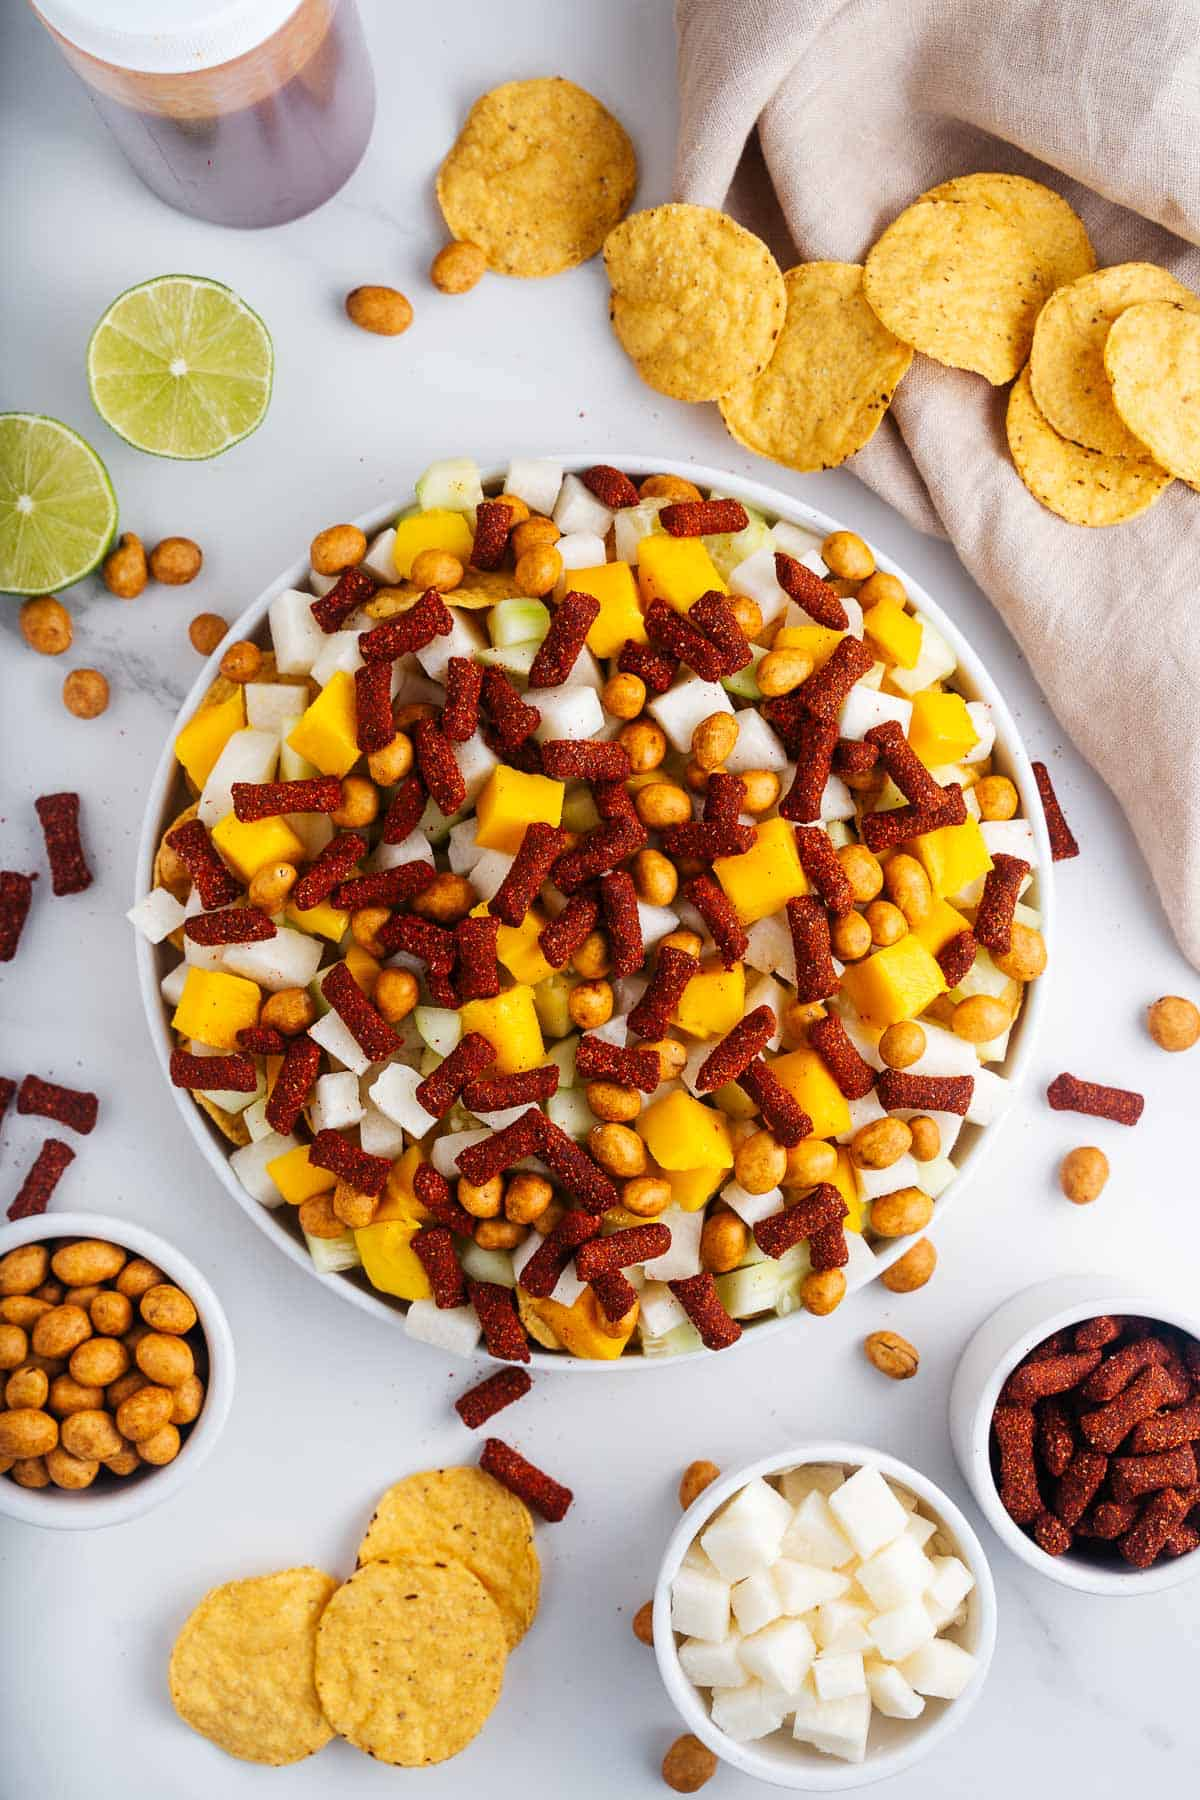 Plate of Tortilla Chips With Jicama, Cucumber, Mango, Tamarind Candies, and Cracker Nuts on Top